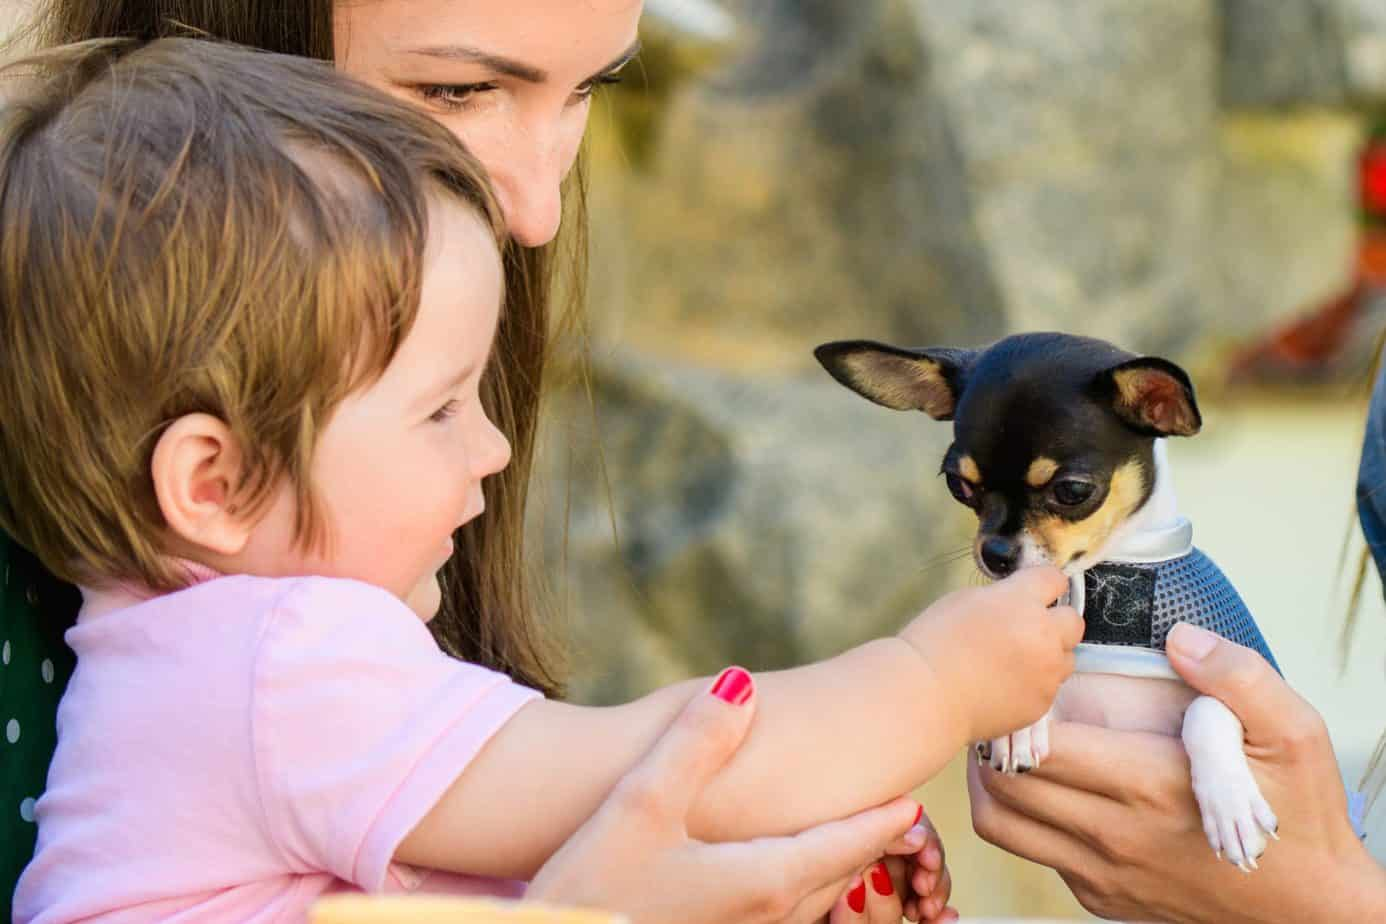 Woman introduces toddler to chihuahua. Teach children to minimize dog bite risks and remember the rules as an adult.